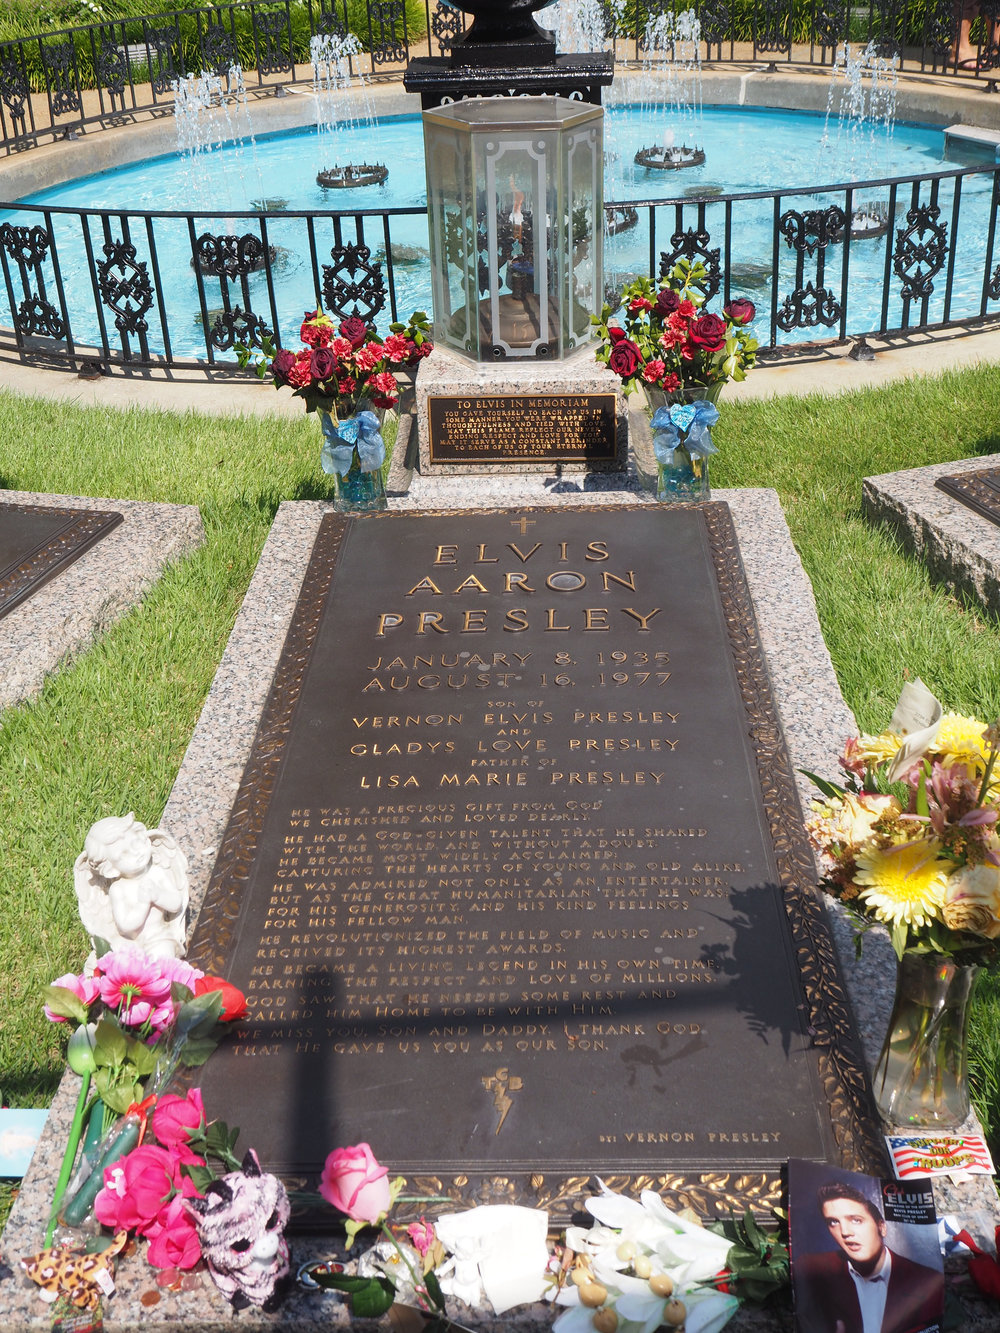 Elvis Presley | Graceland | Memphis, Tennessee.  Elvis Aaron Presley's grave. Click to see more pics.